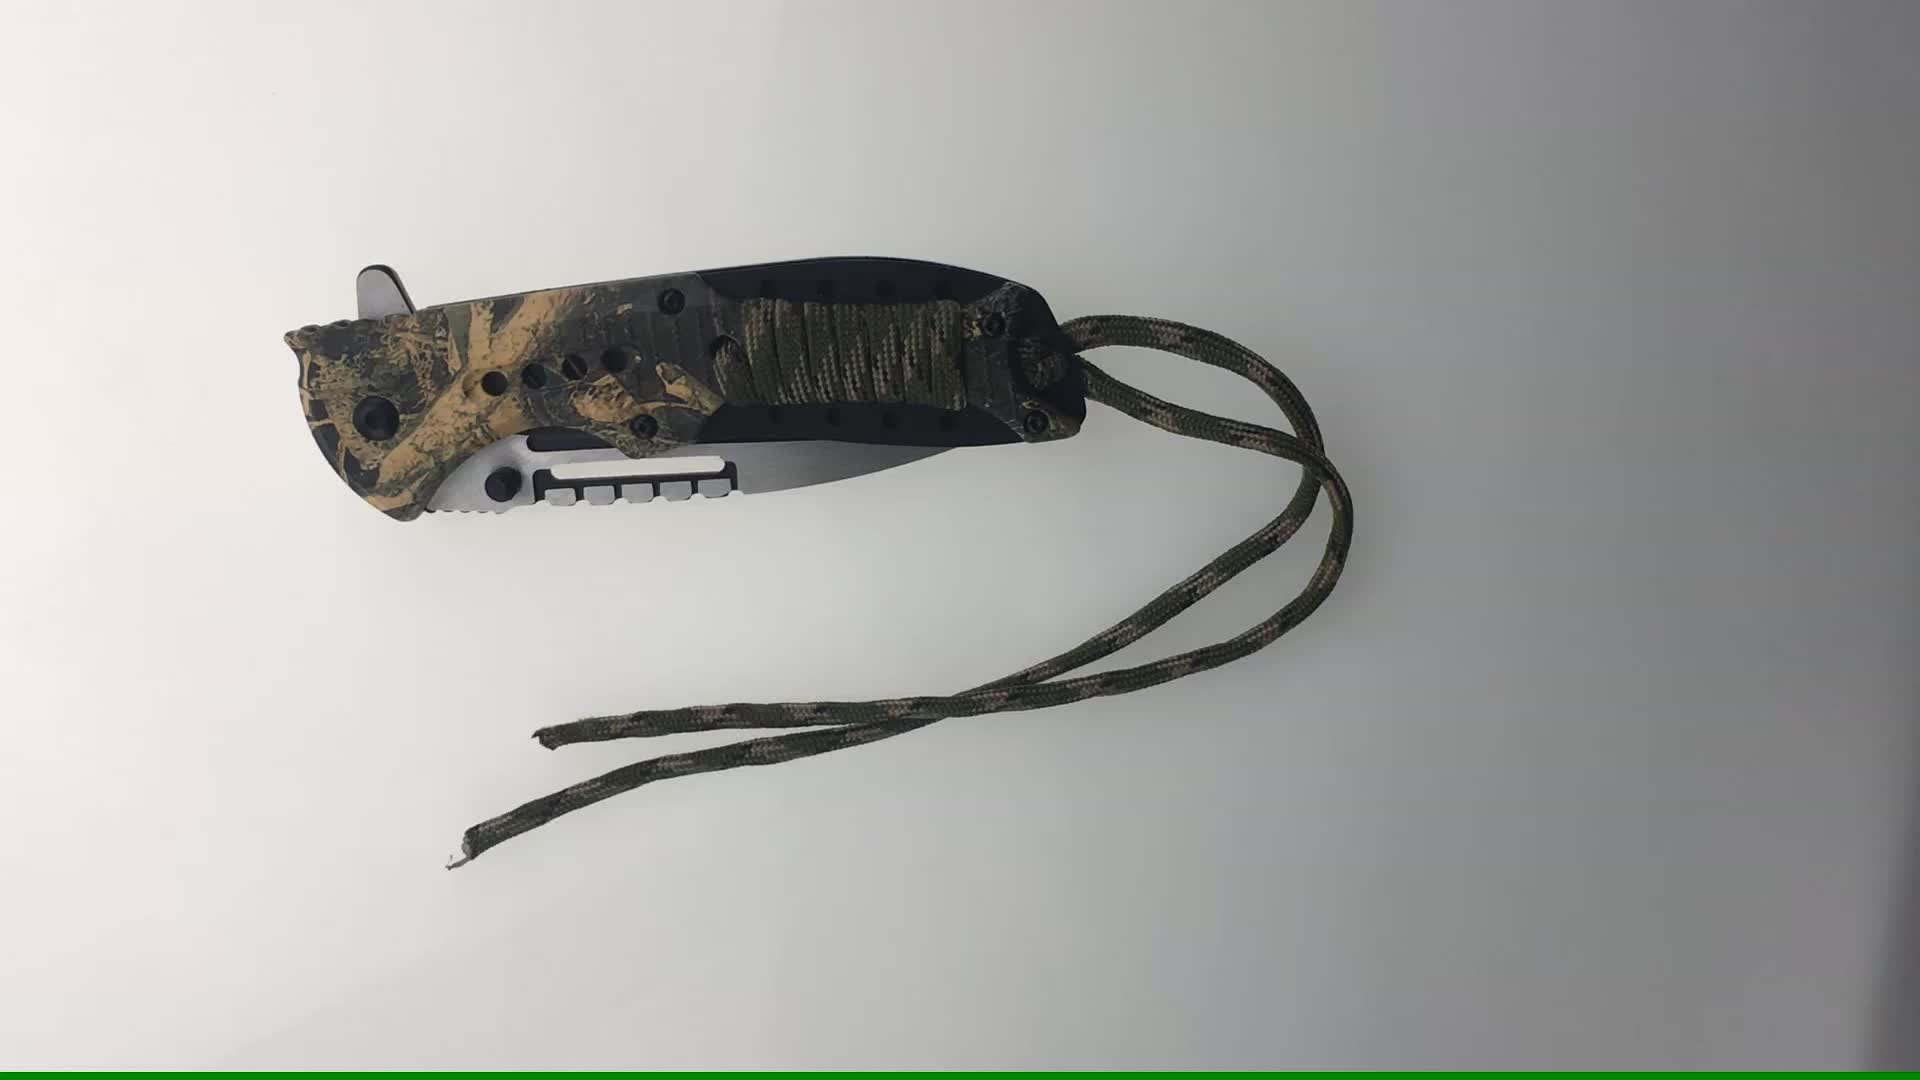 Stainless steel survival camping pocket knife